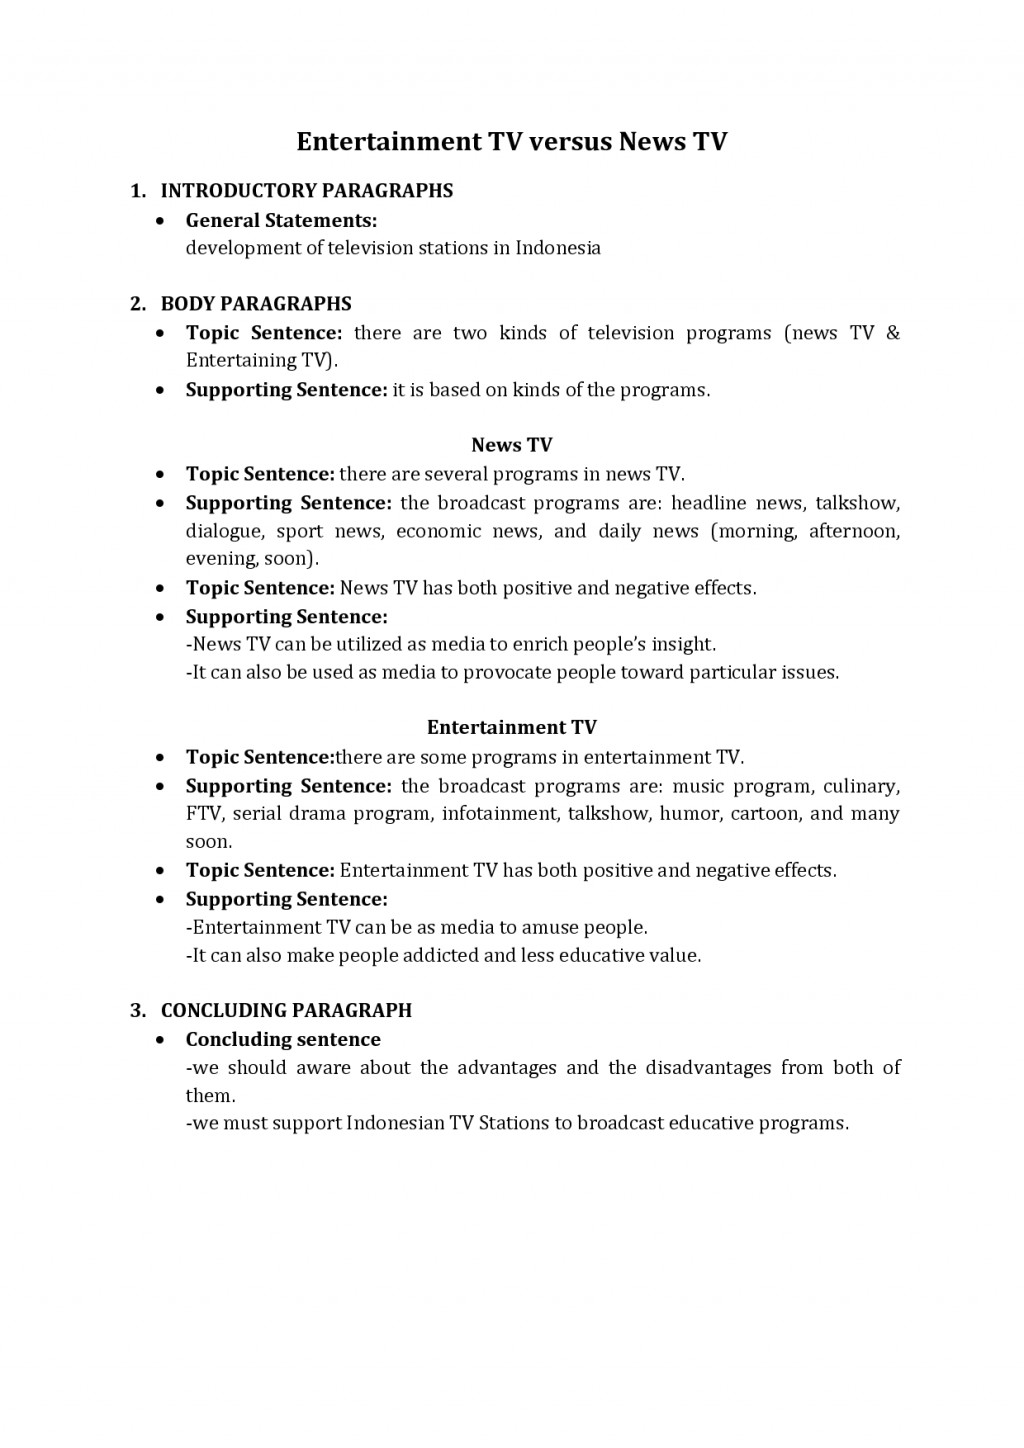 018 Fbunmxinib Outline To Essay Exceptional Format For Definition About Social Media Argumentative Middle School Large